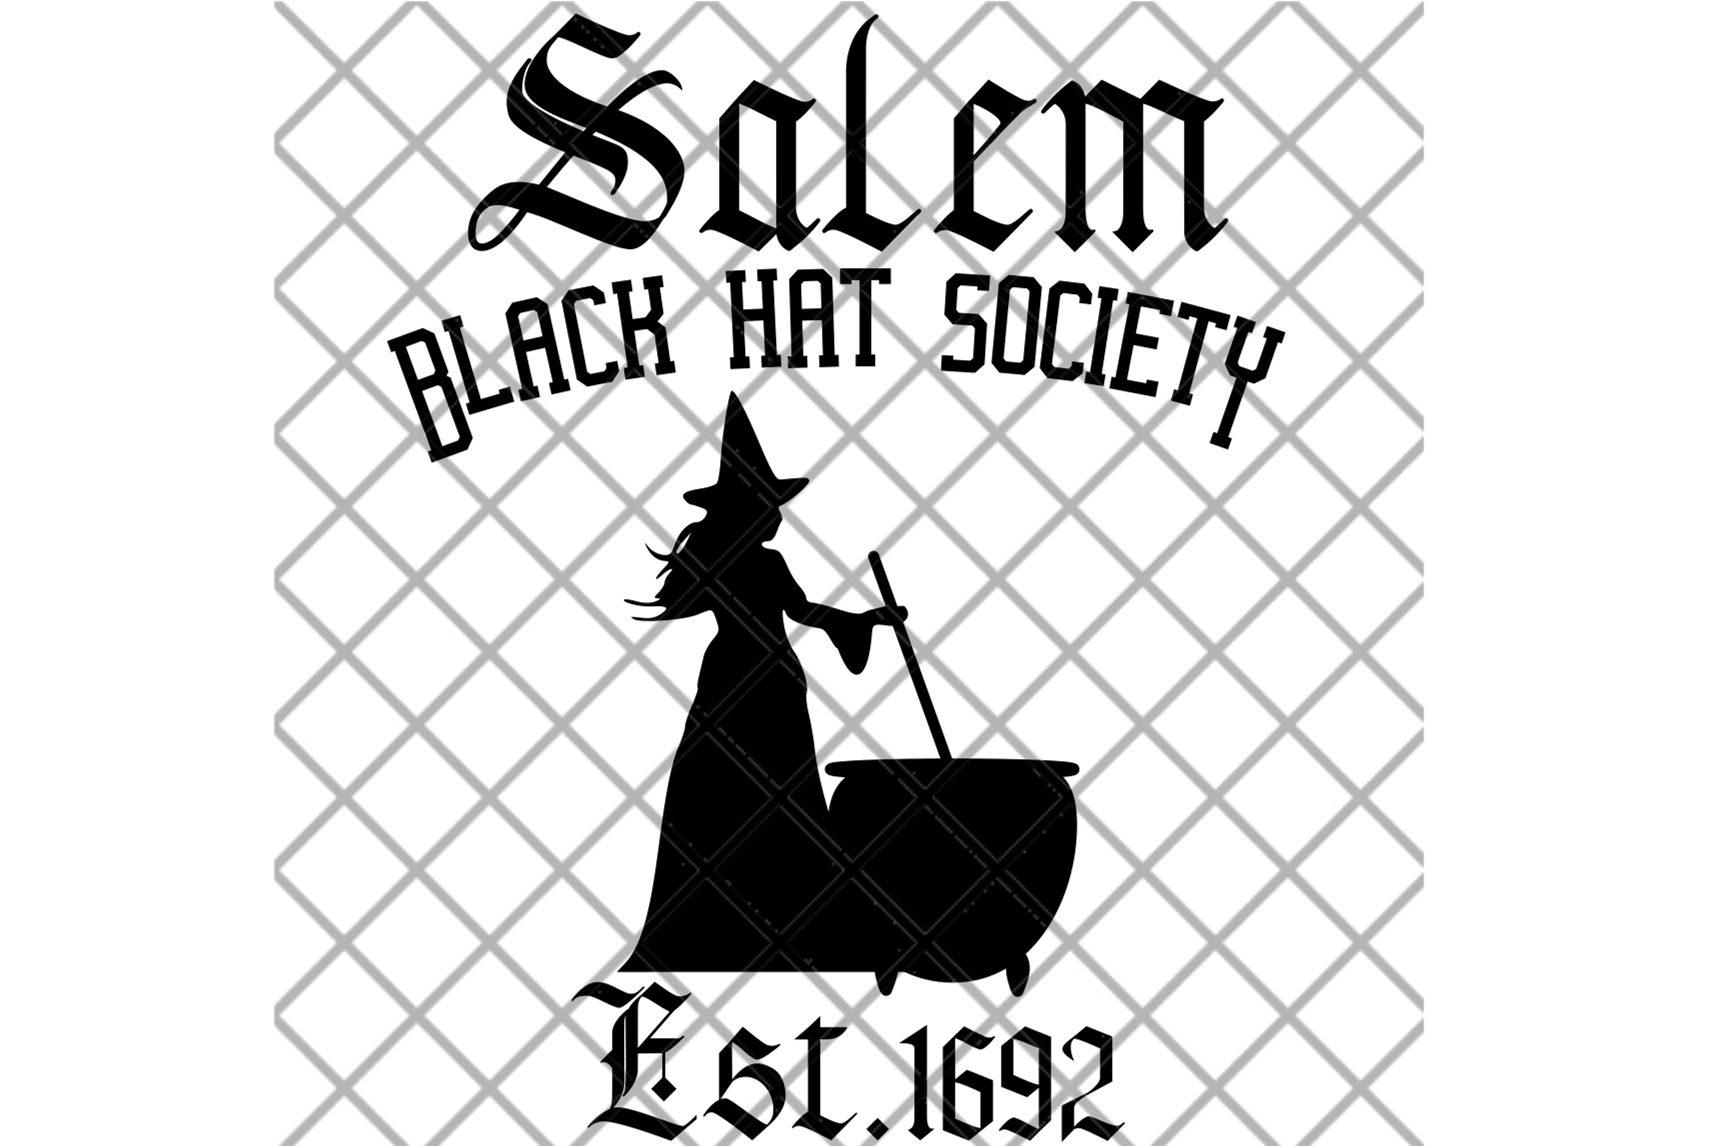 Witch SVG, Black Hat Society, Halloween Digital Cut File example image 3